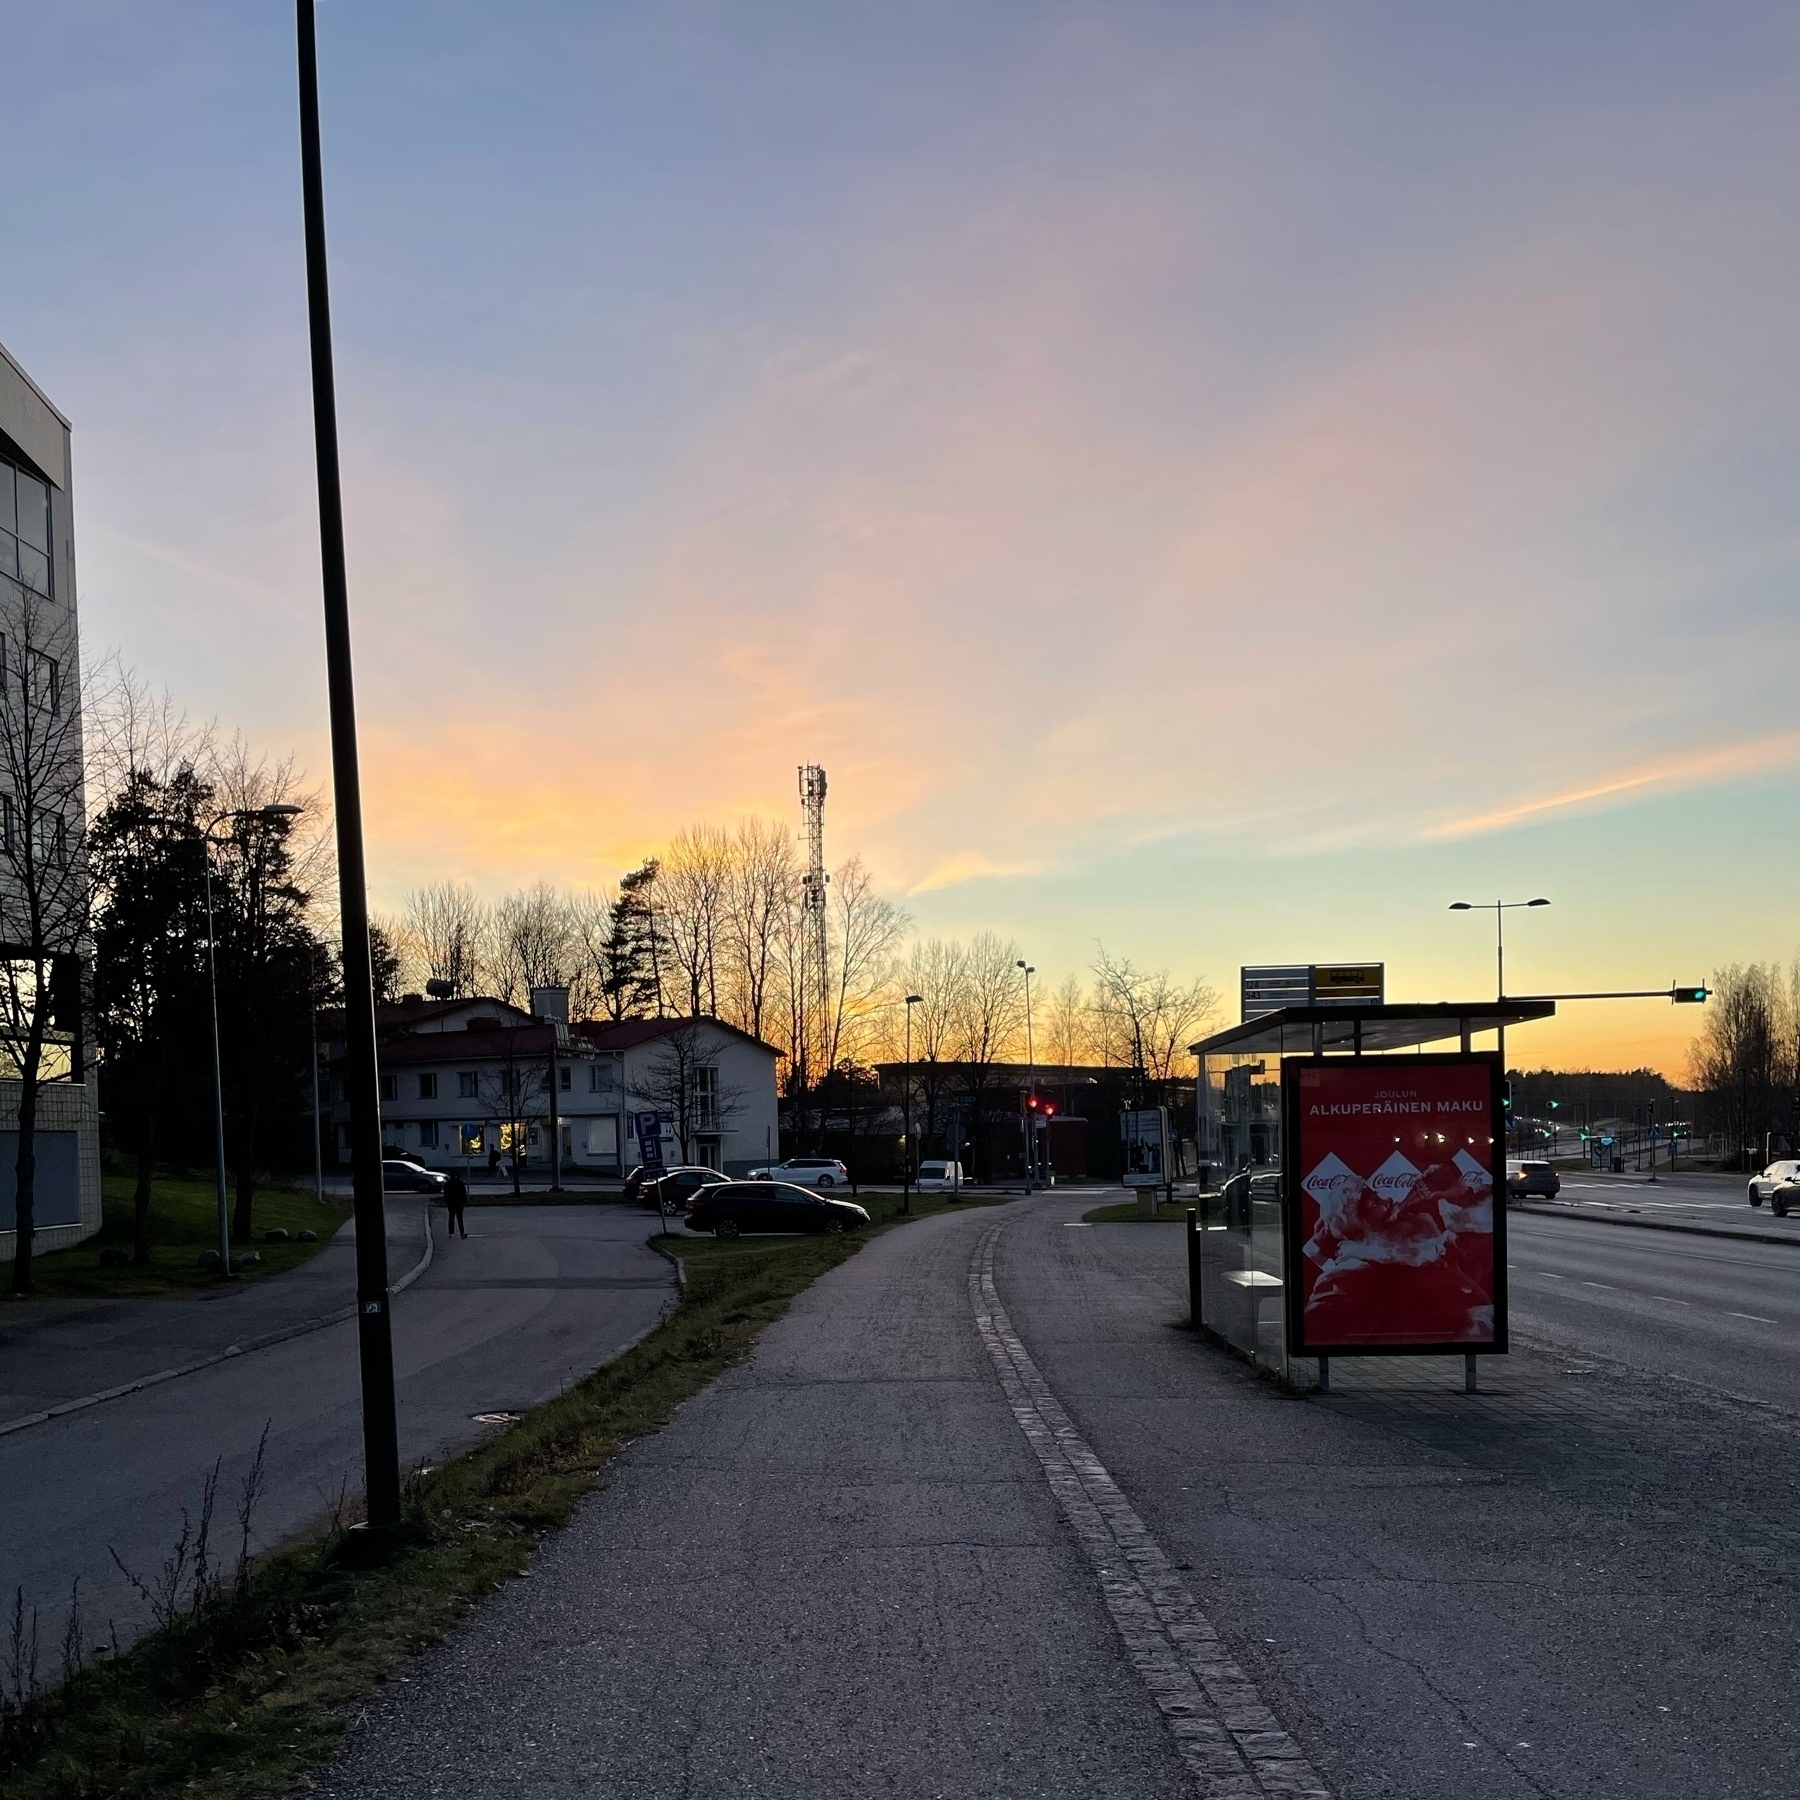 sunset and some industrial buildings